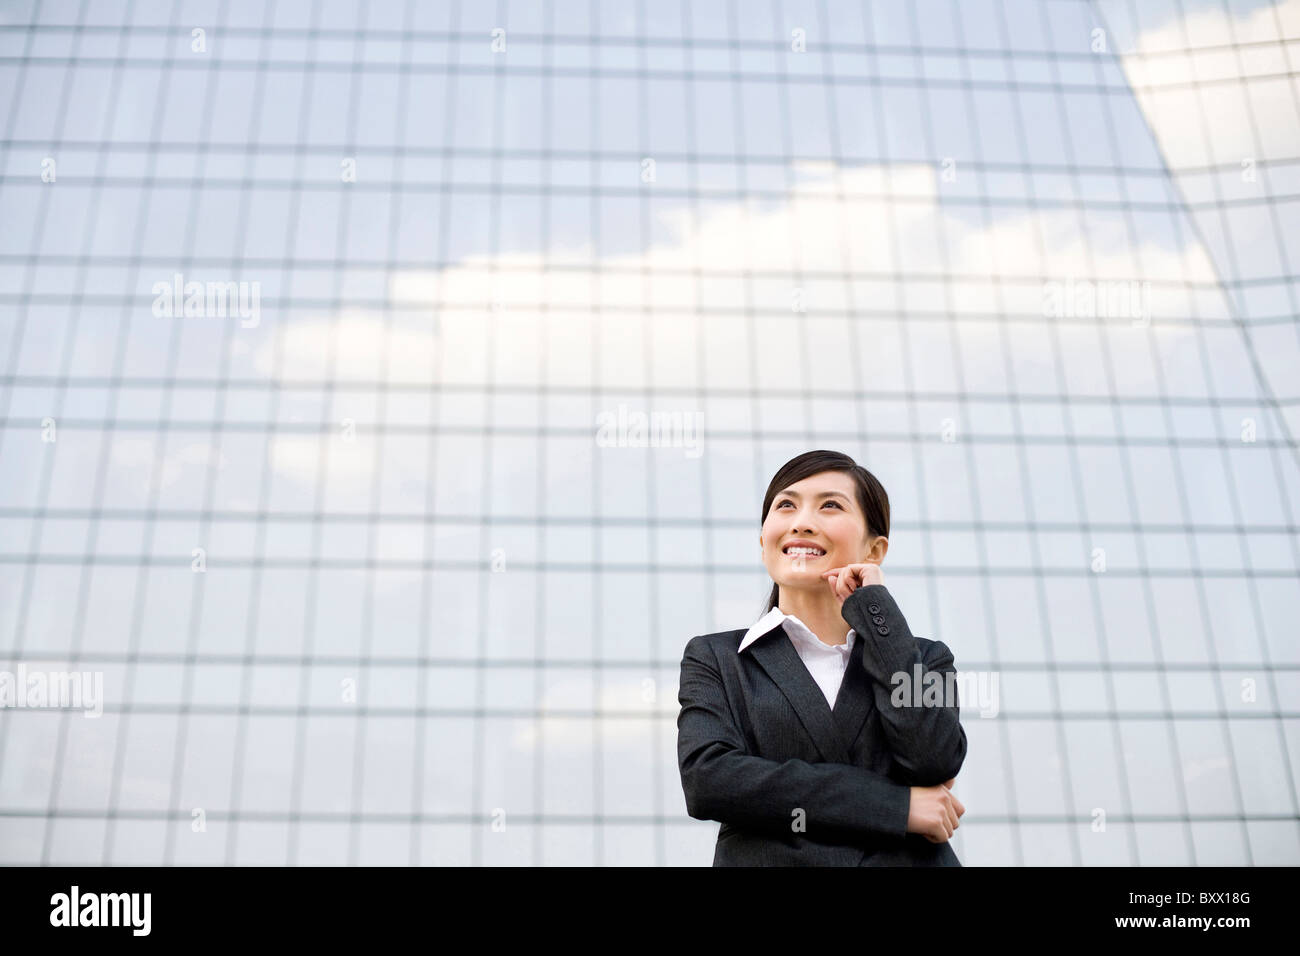 Businesswoman in front of a tall building - Stock Image